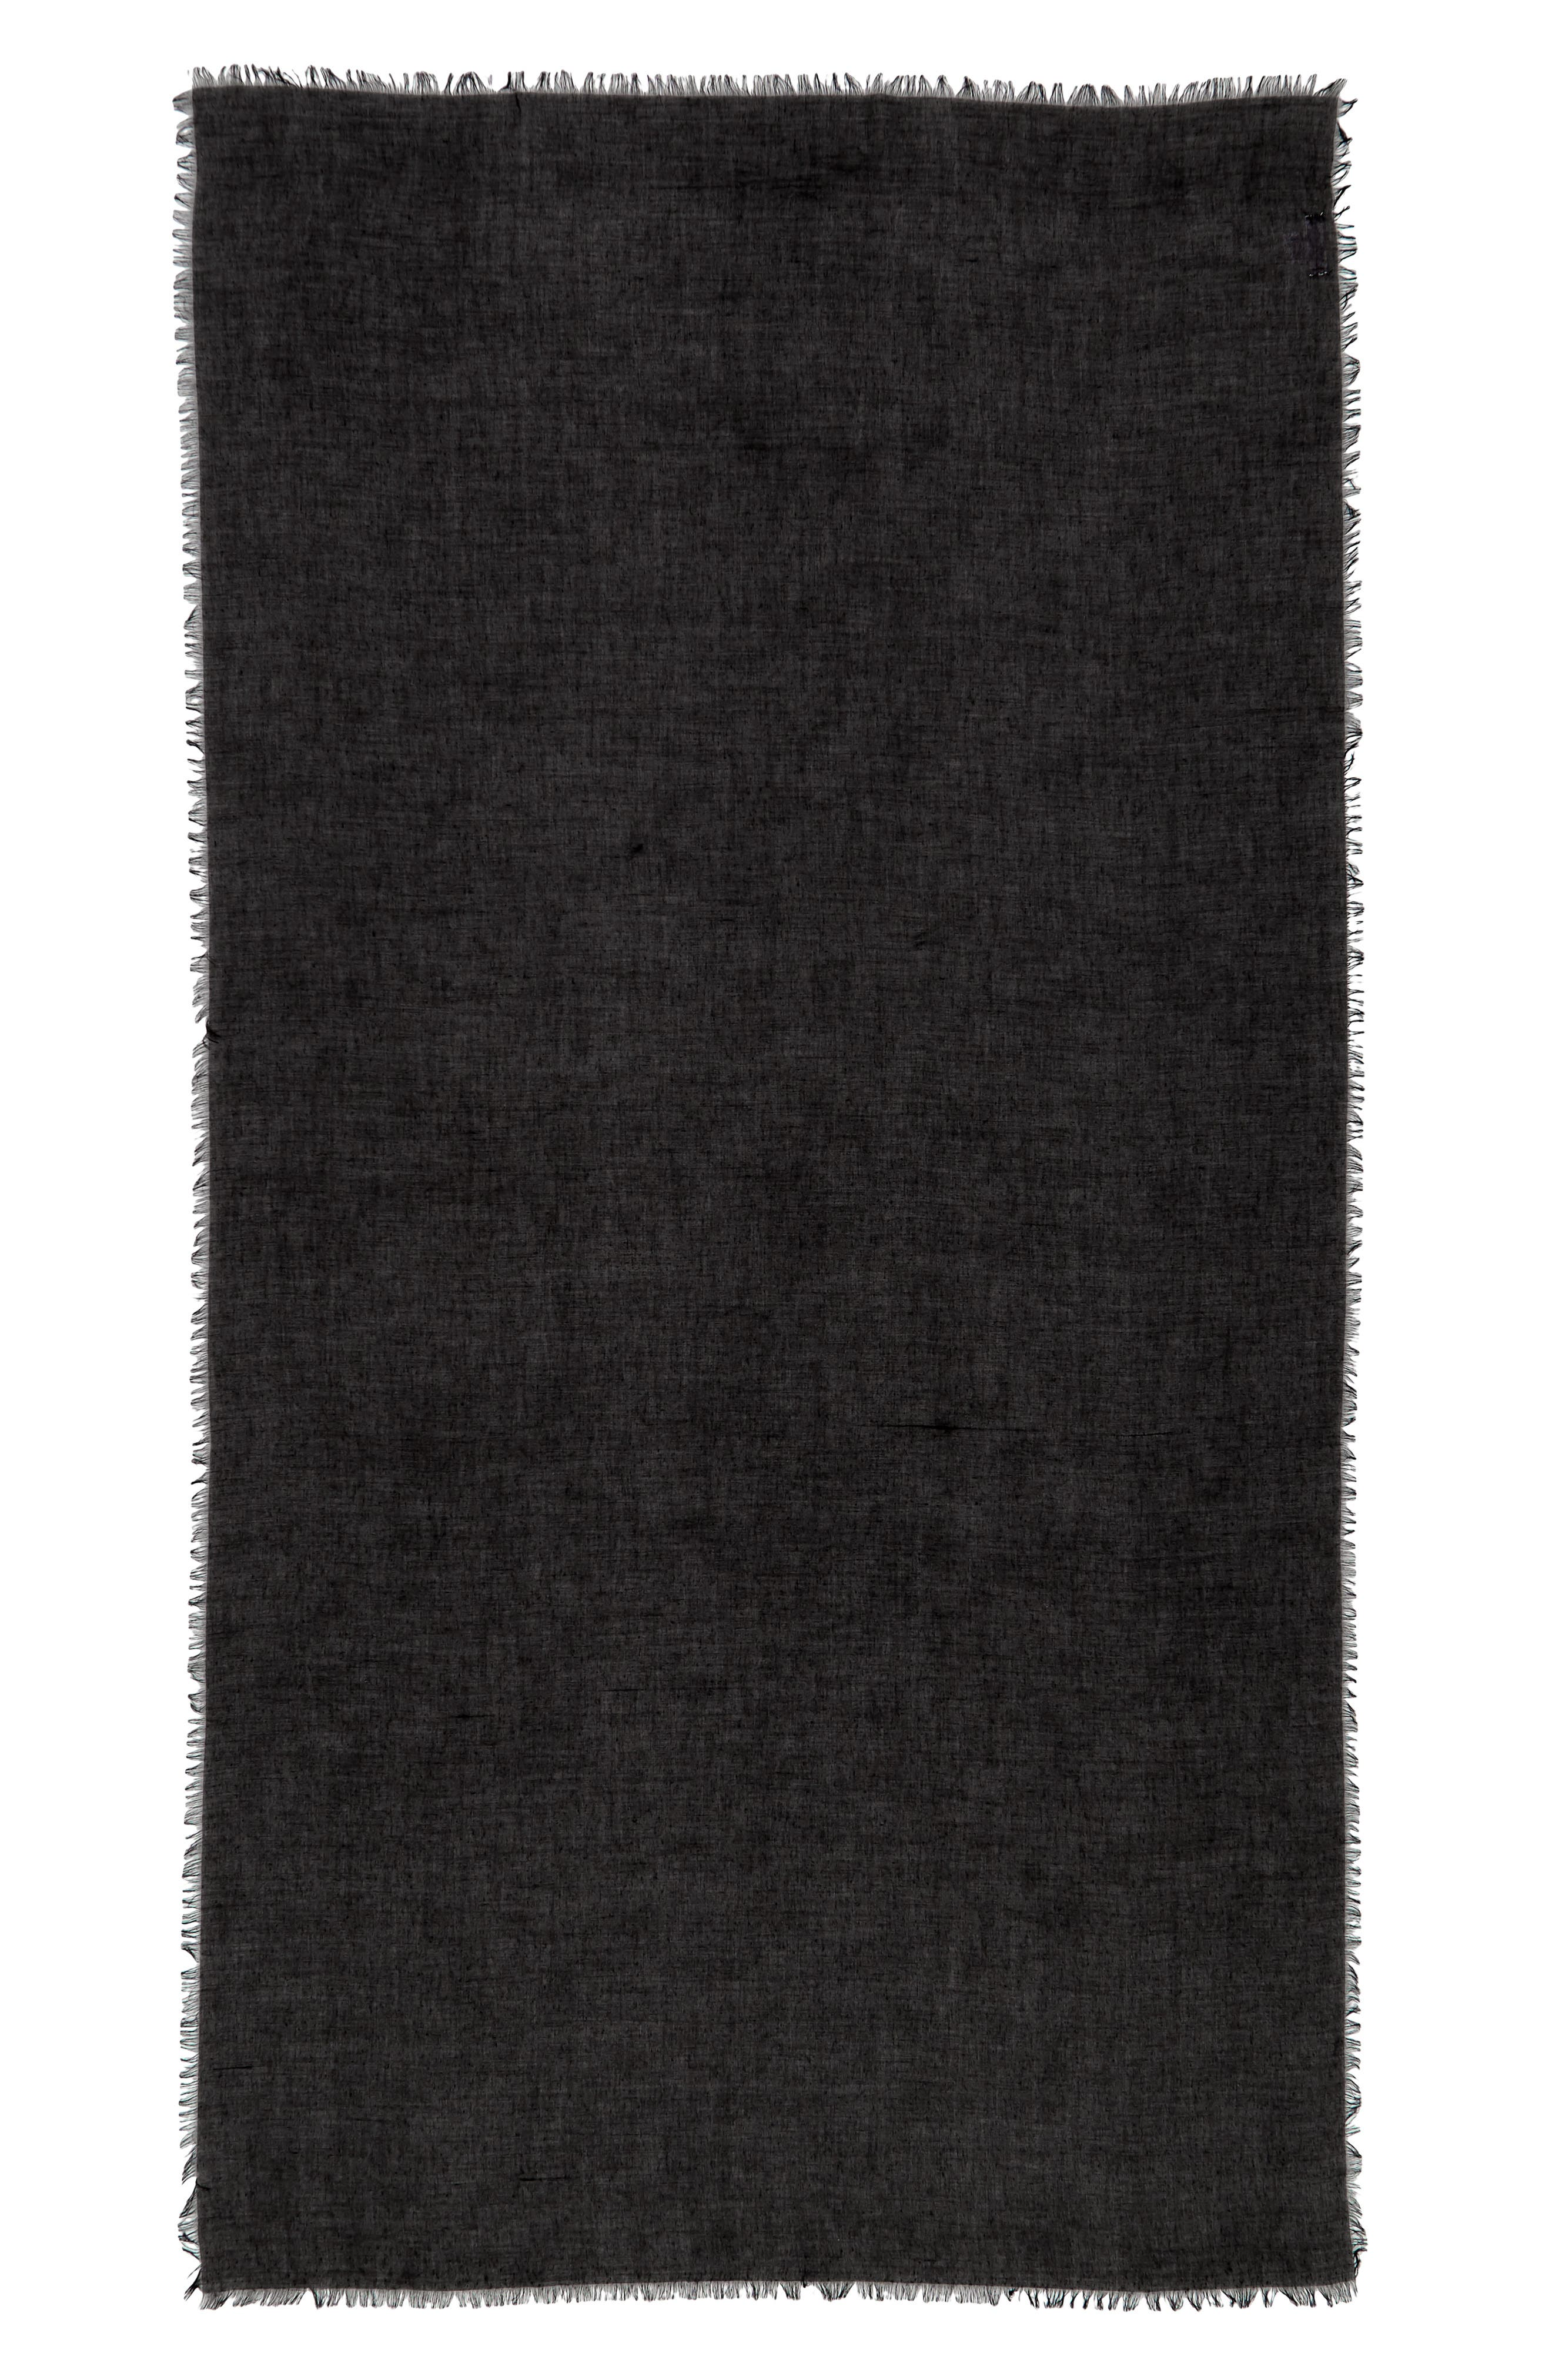 SOLE SOCIETY, Lightweight Cotton Scarf, Alternate thumbnail 2, color, BLACK